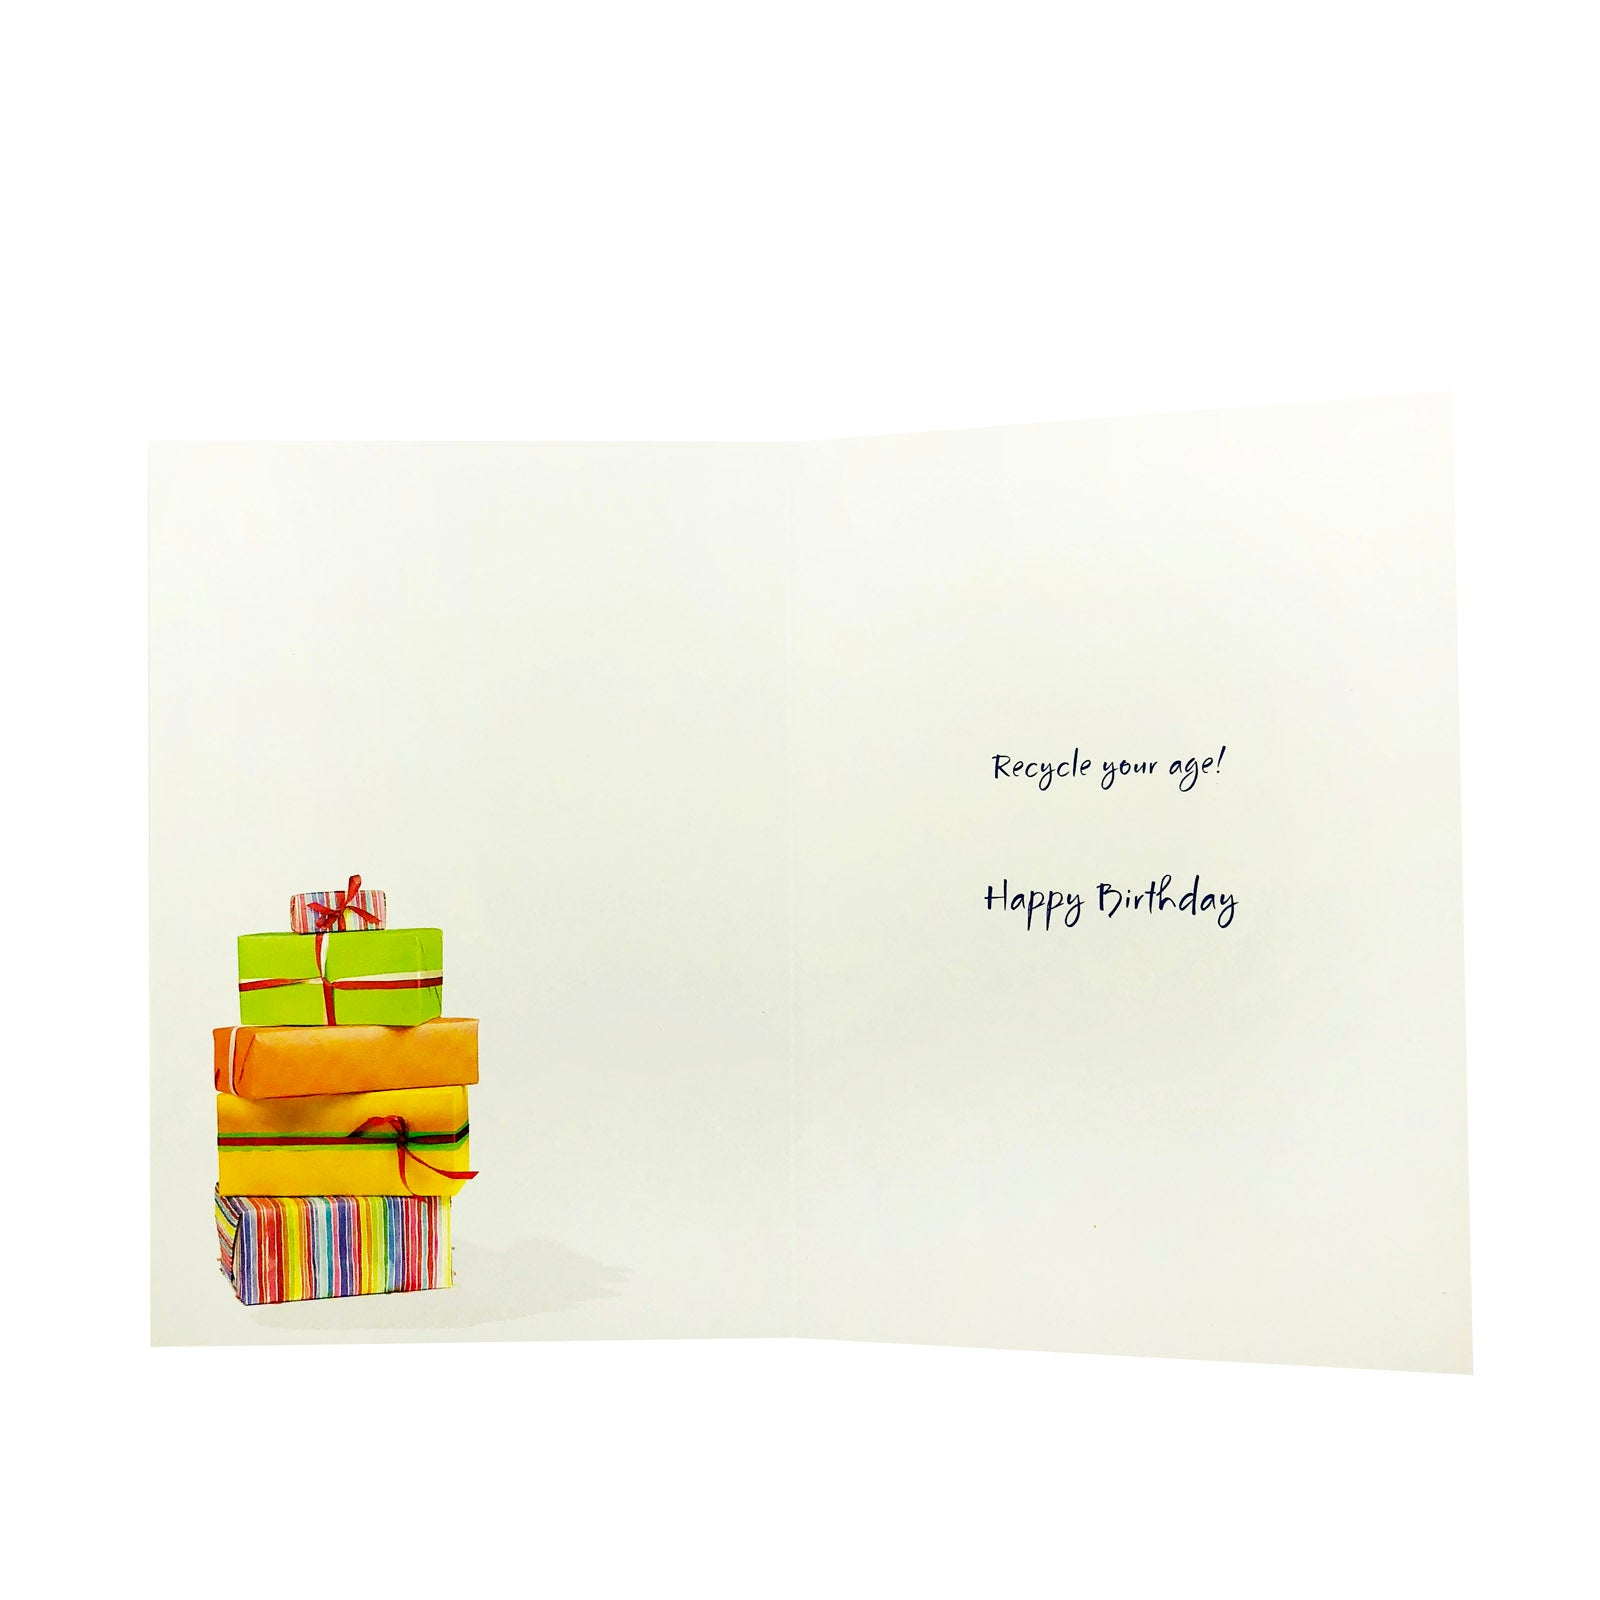 Designer Greetings Birthday Card - Environmentally Friendly Presents